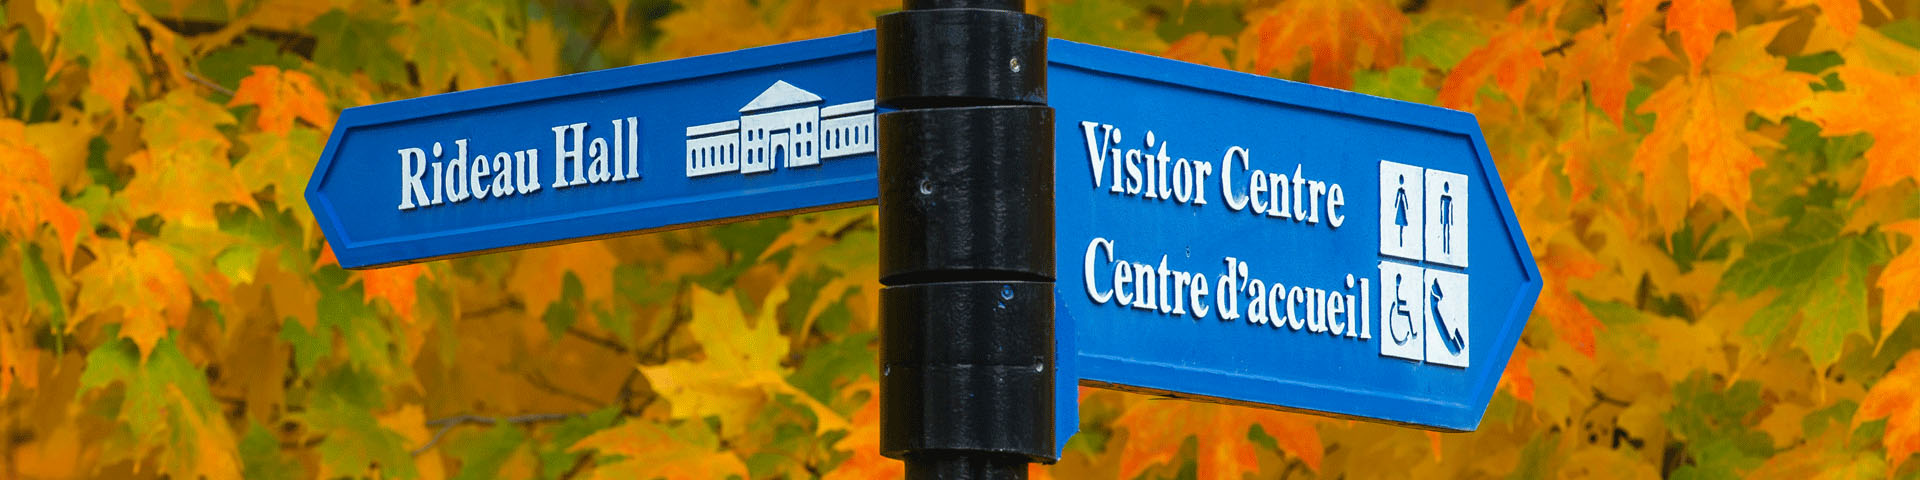 Photo of a wayfinding sign for Rideau Hall and the Visitor Centre